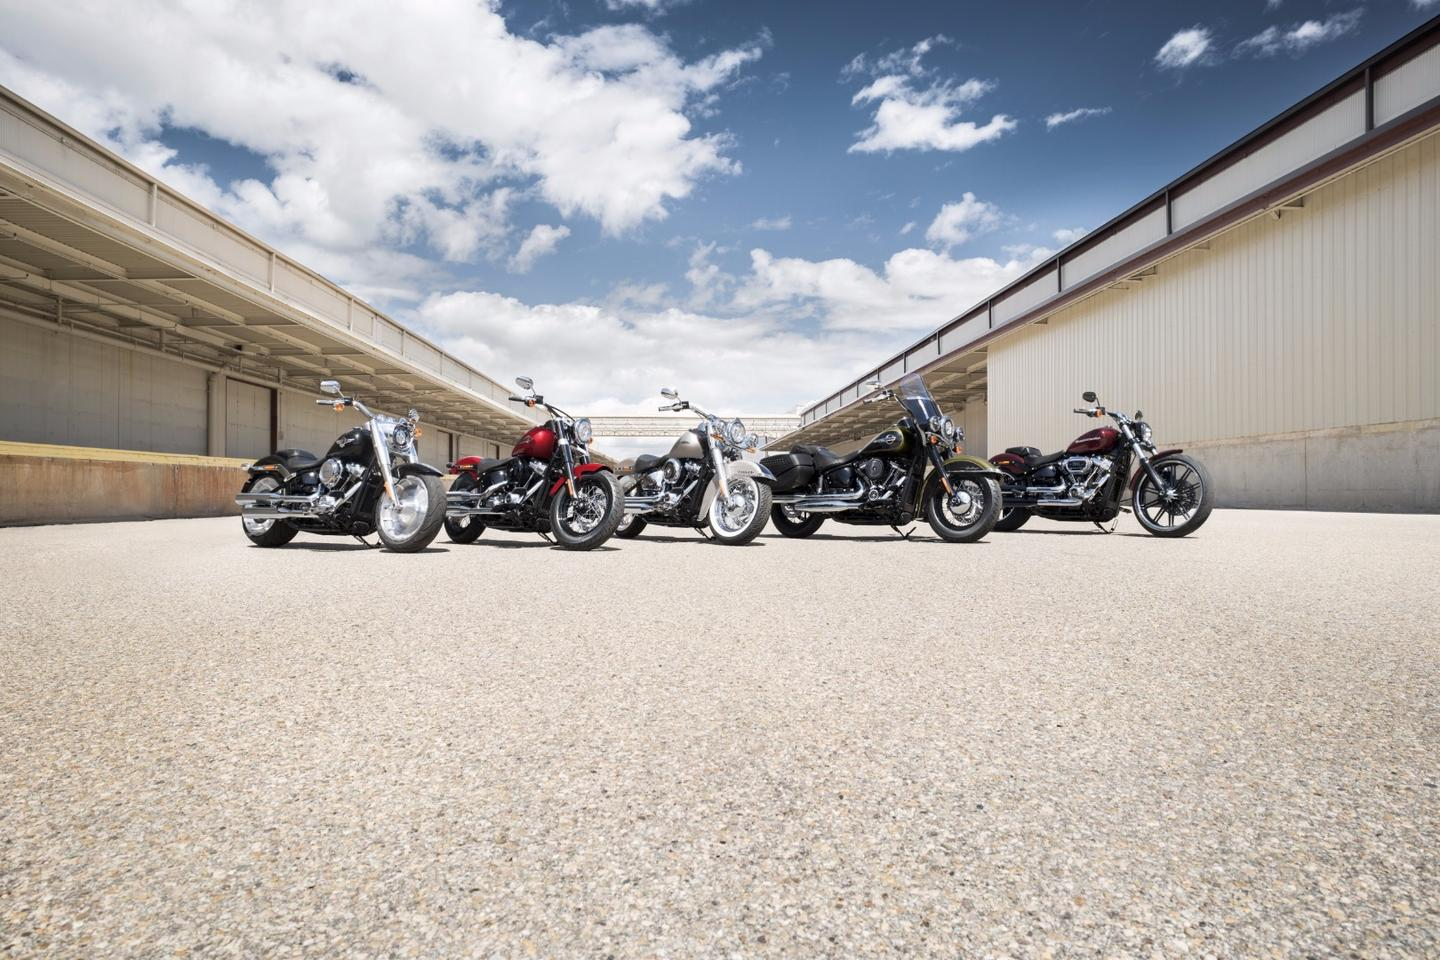 Harley-Davidson introducesthe 2018 Softail model family with new engine, frame and suspensions